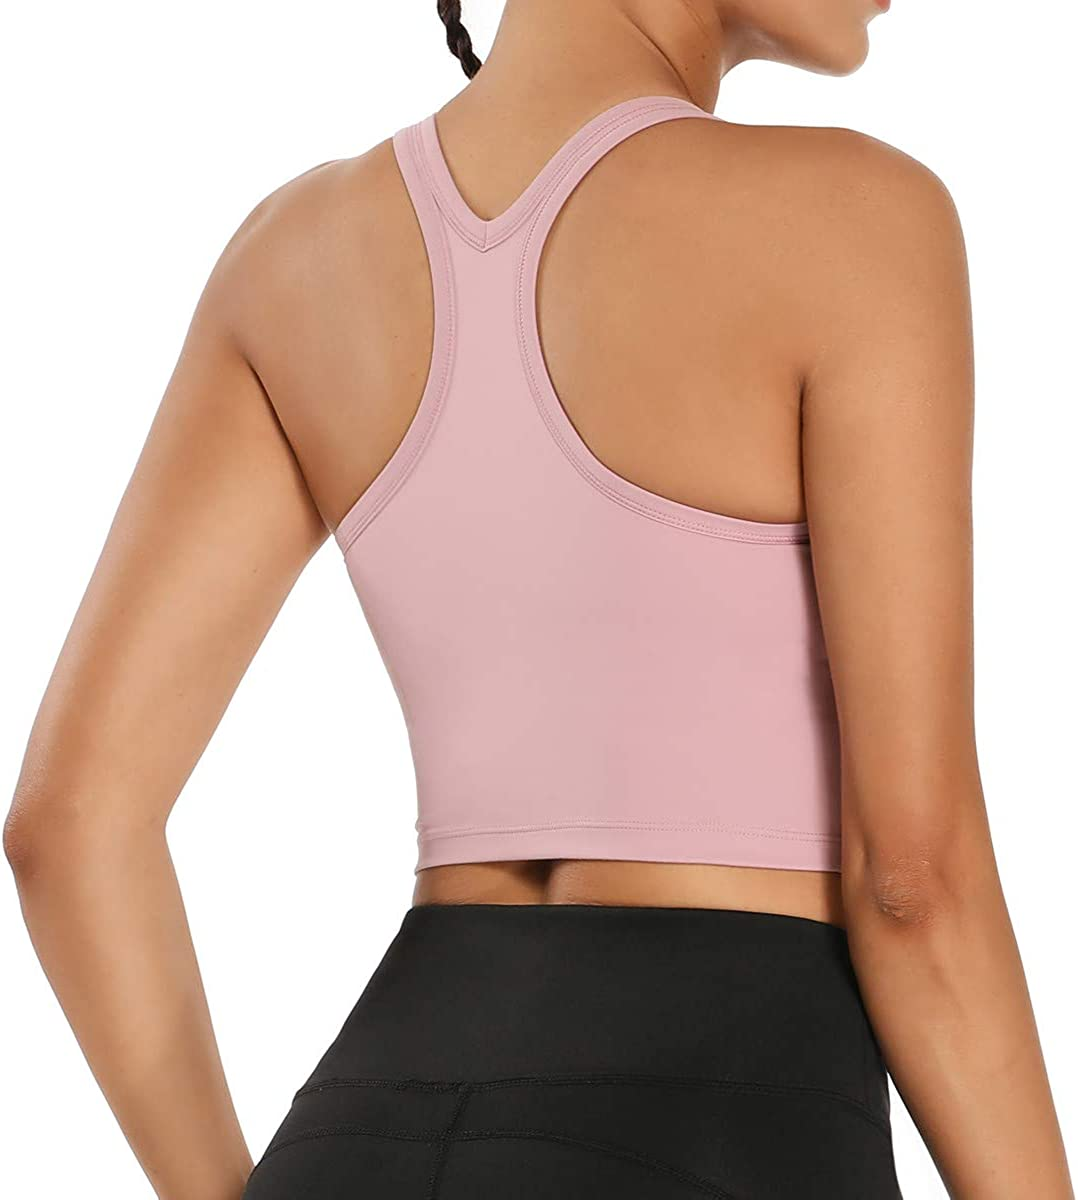 Nanomi Beauty Womens Removable Padded Sports Bras Workout Running Yoga Tank Tops